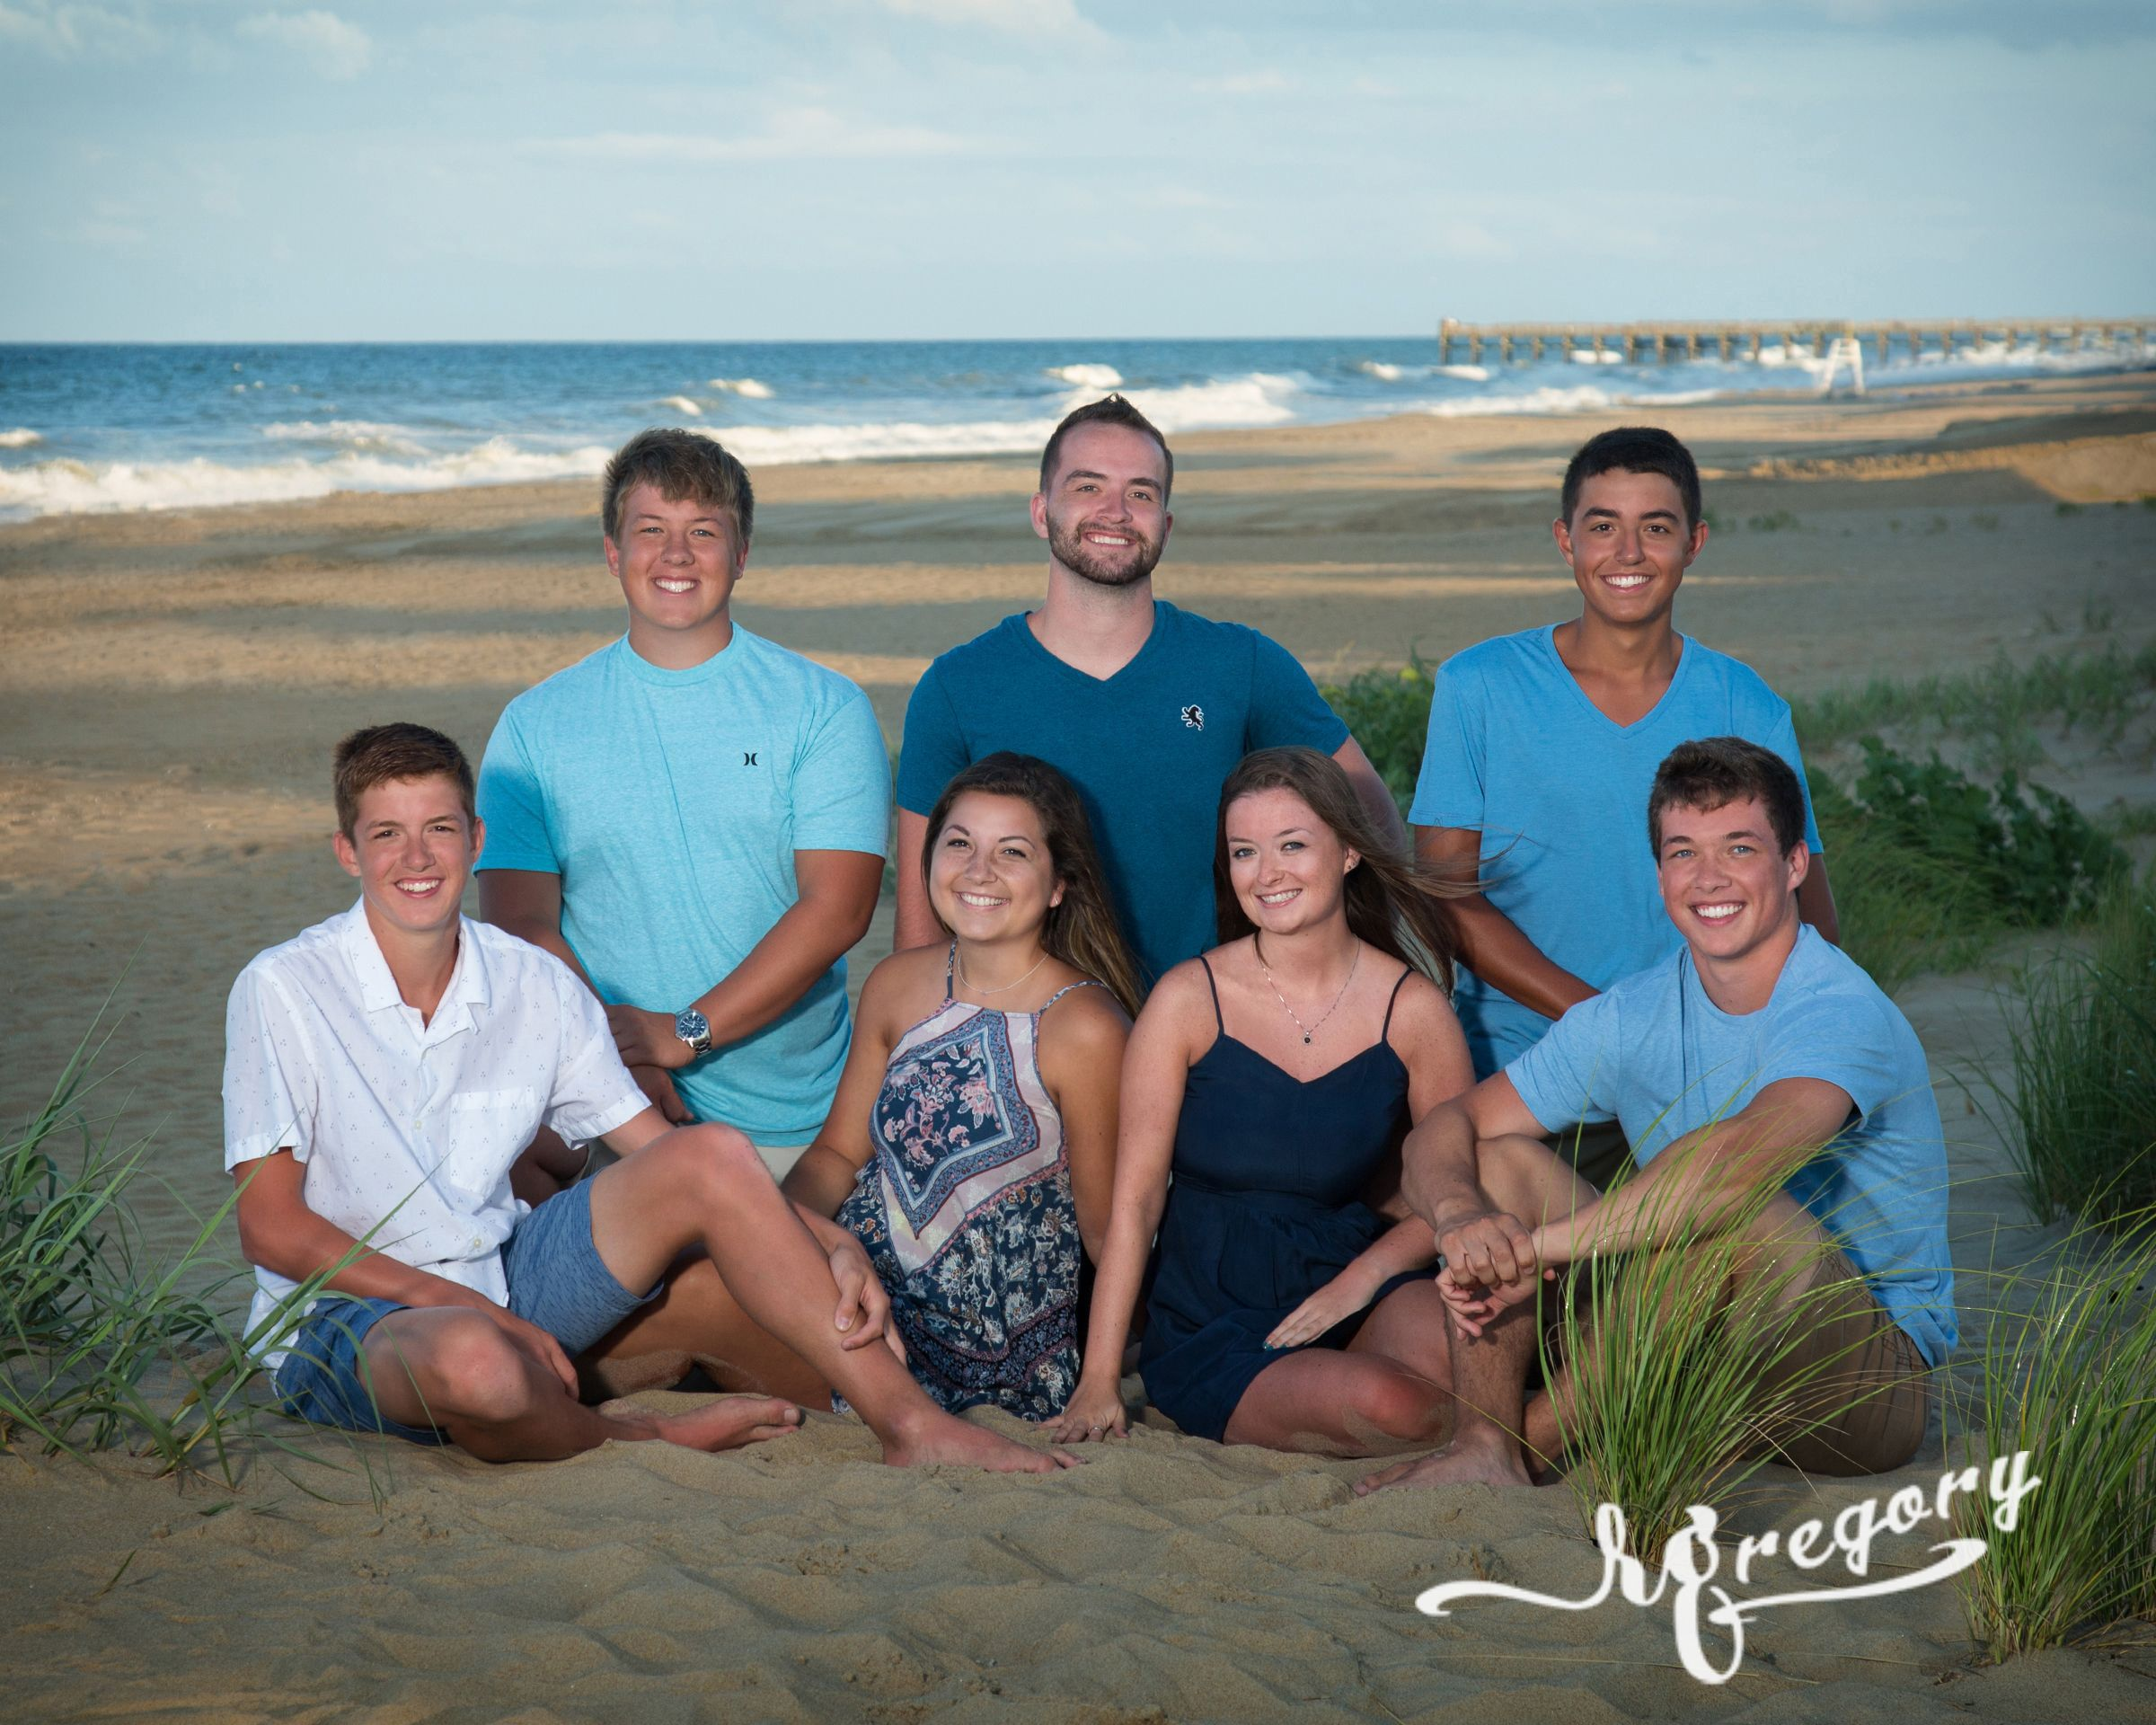 Owrey beach vacation photographer